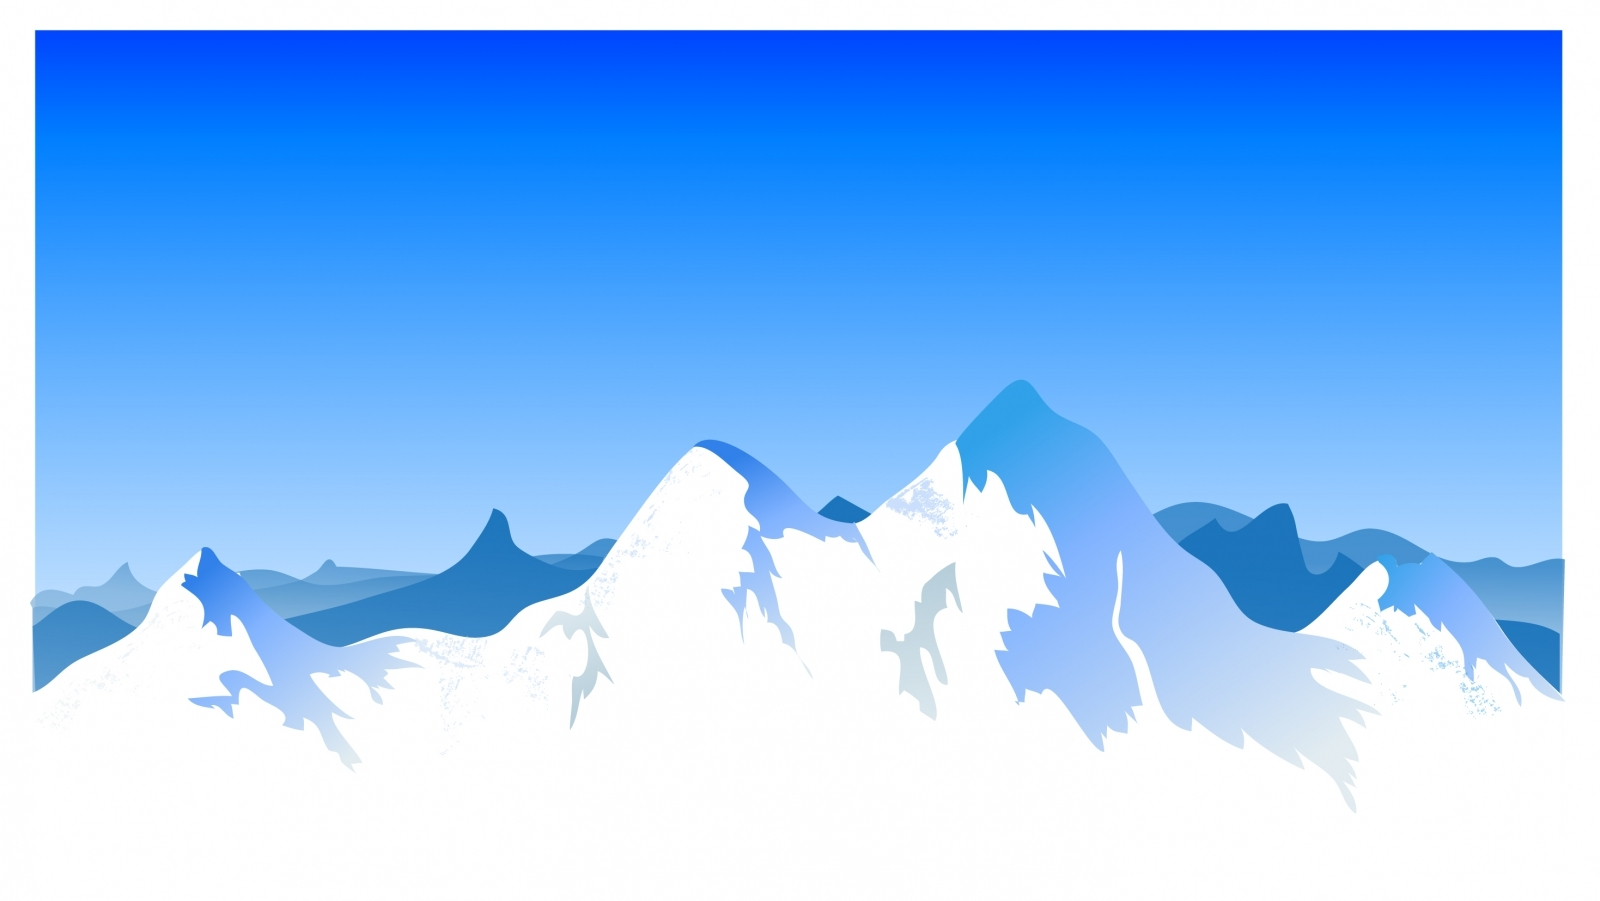 mountain landscape clipart at getdrawings com free for personal rh getdrawings com